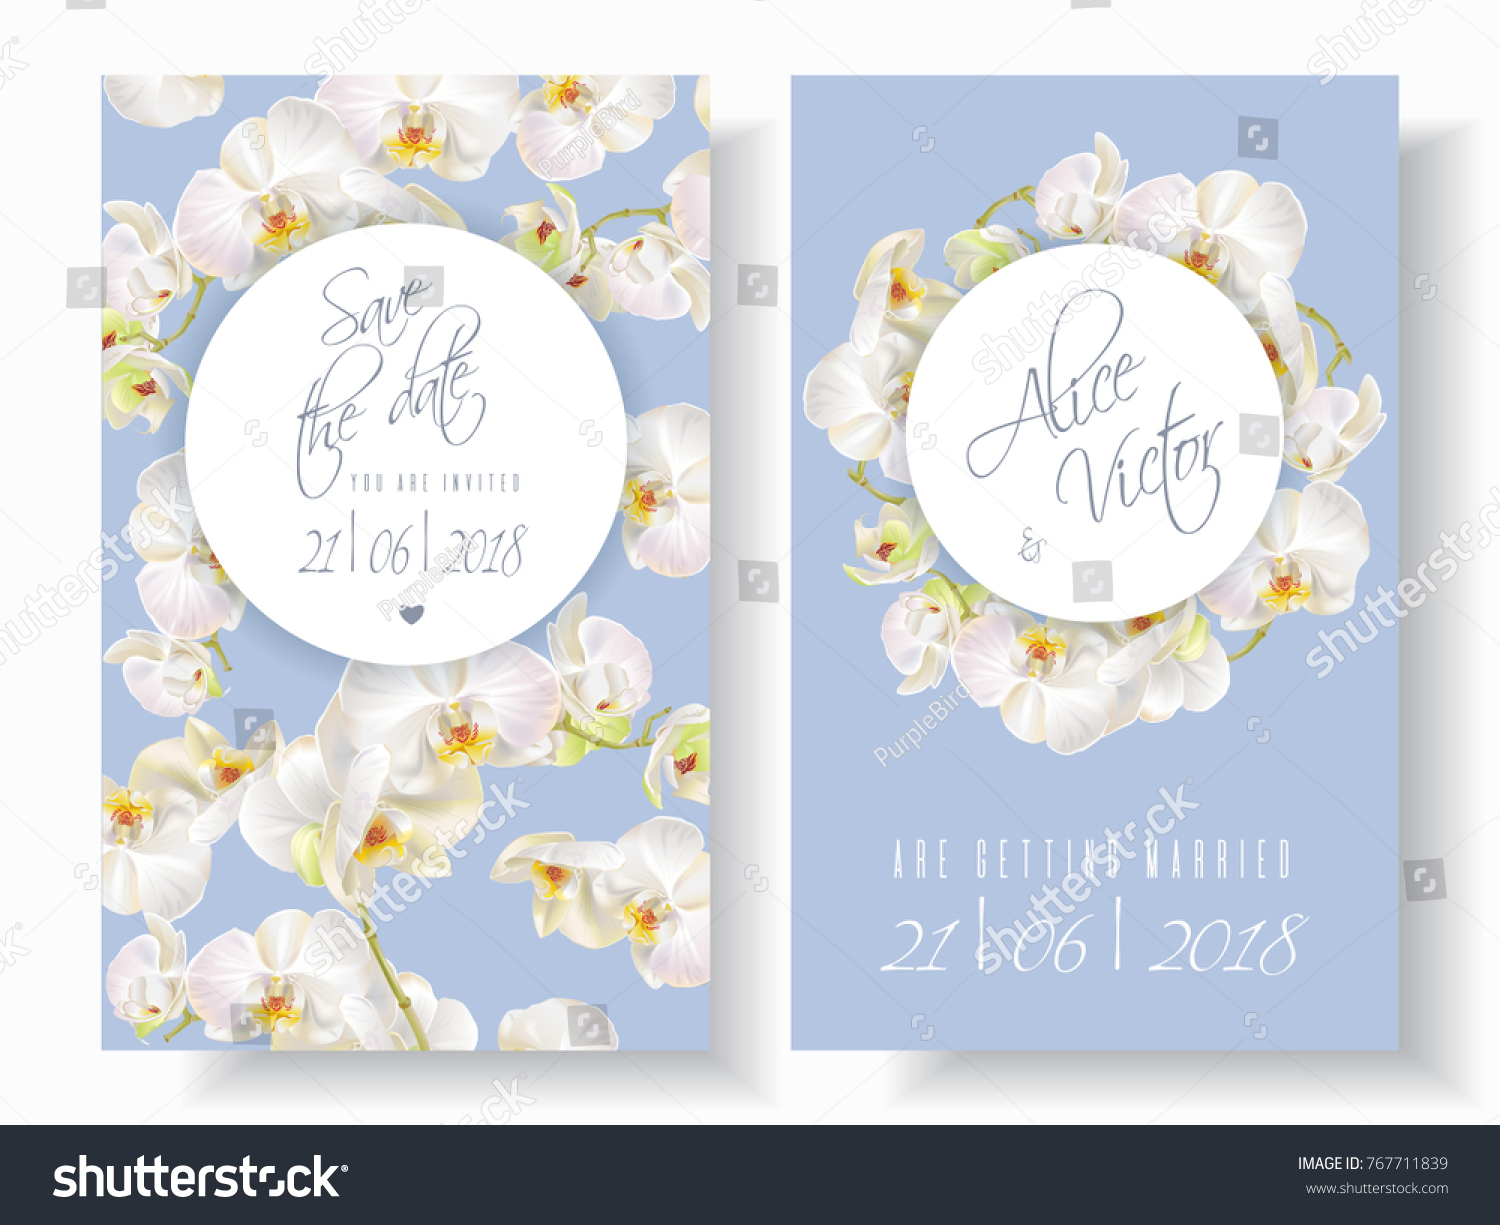 Invoice Templates 2019 » wedding invitations with blue orchids ...